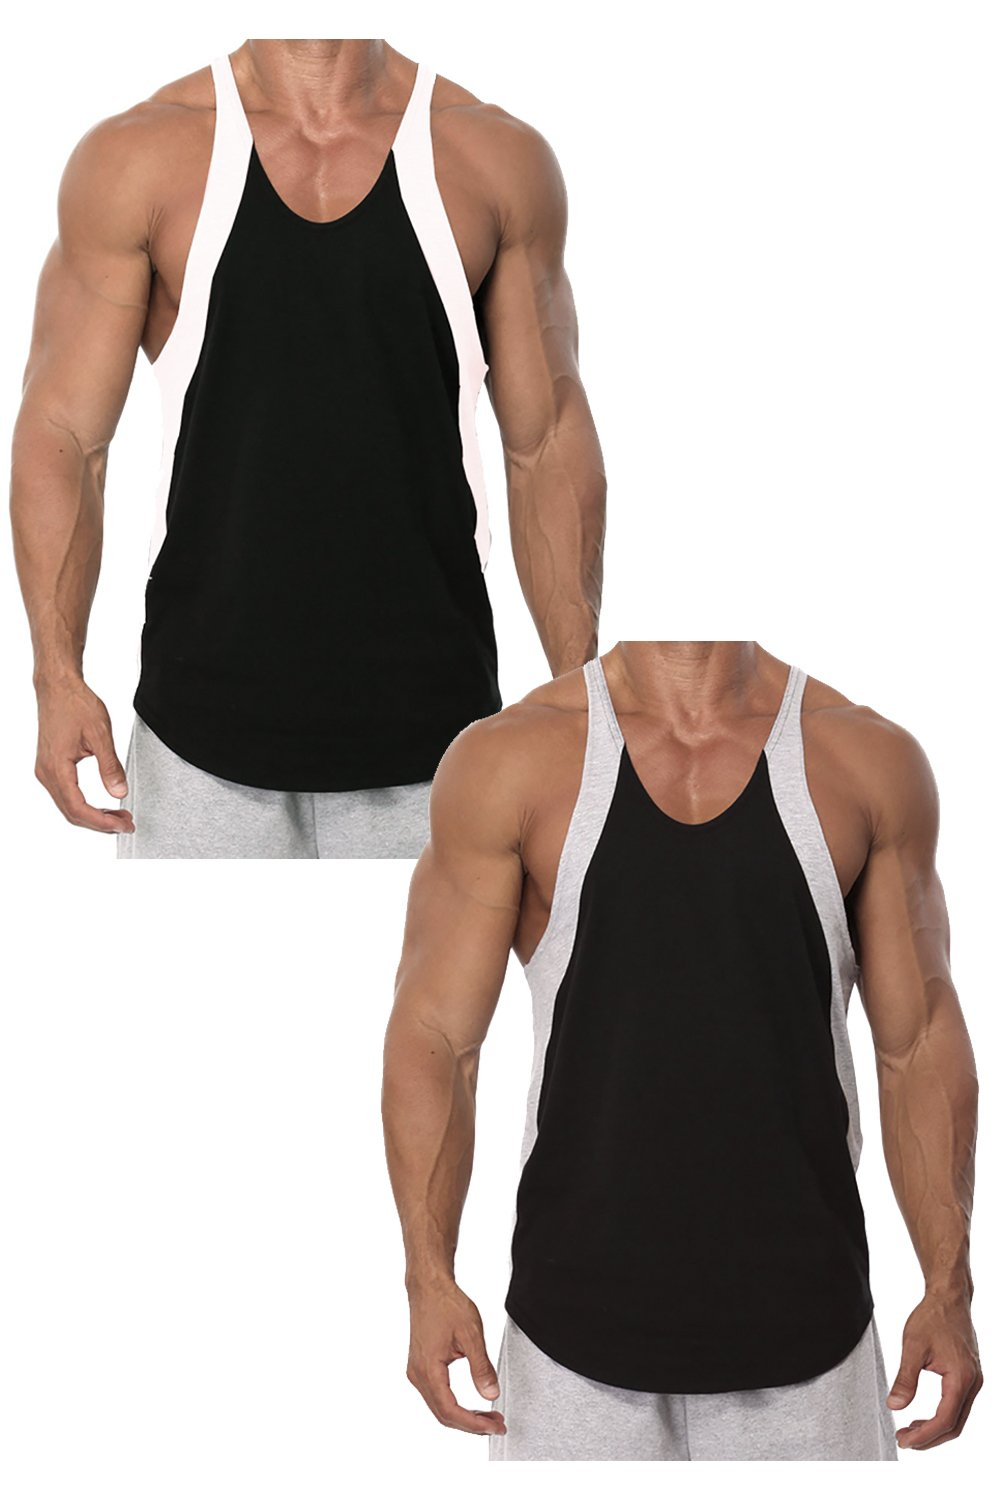 Mens Sport Stringer Tank Top by Pitbull In Your Choice Of Color (Medium, 2 Pack Black/White and Black/Grey)